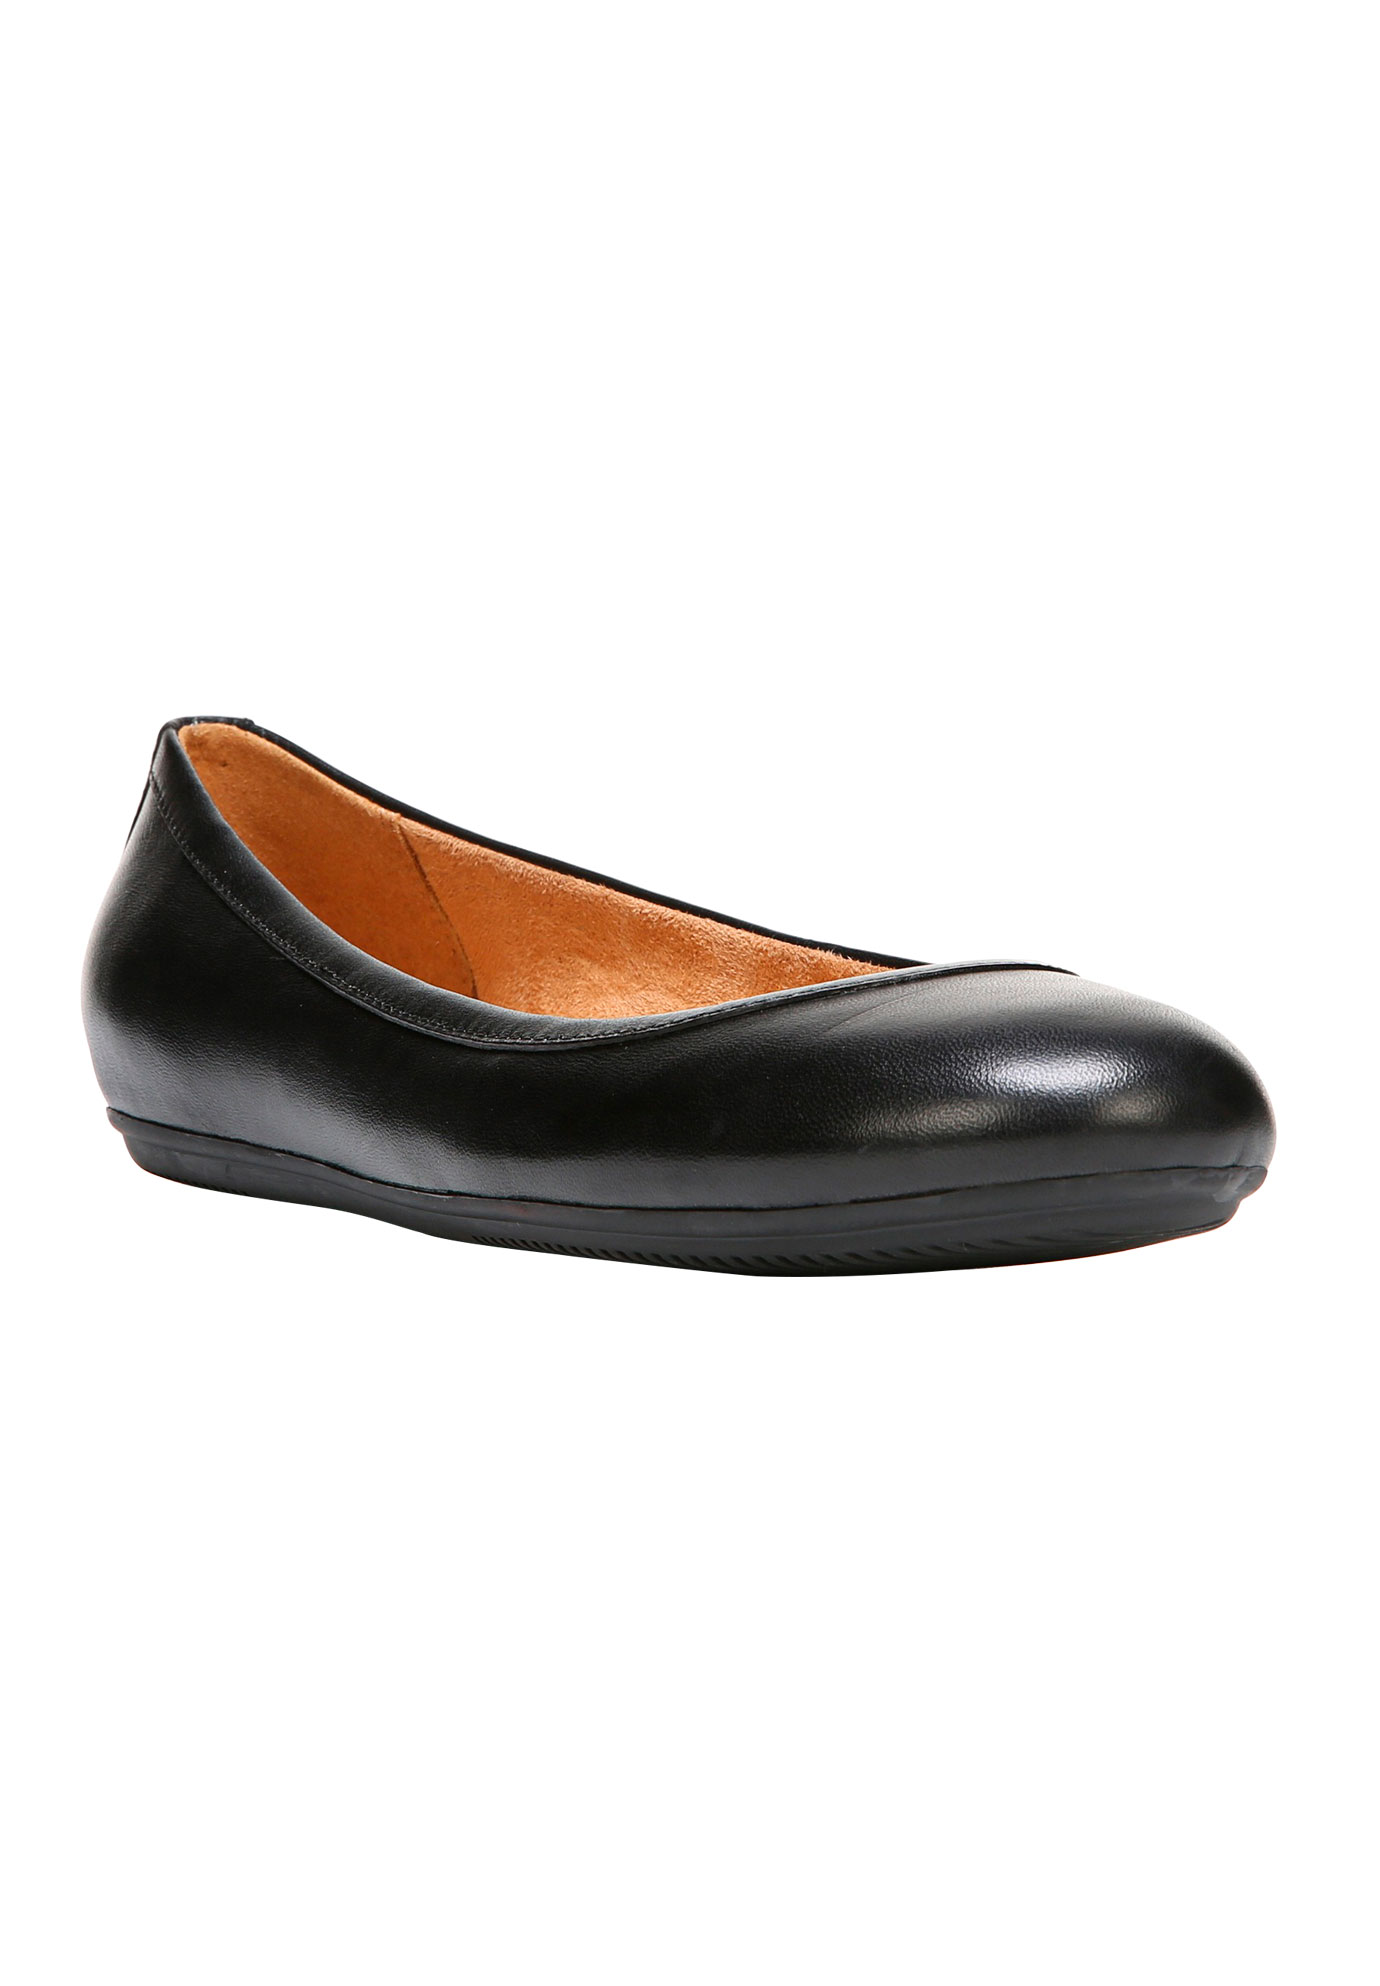 Brittany Flats by Naturalizer®, BLACK LEATHER, hi-res